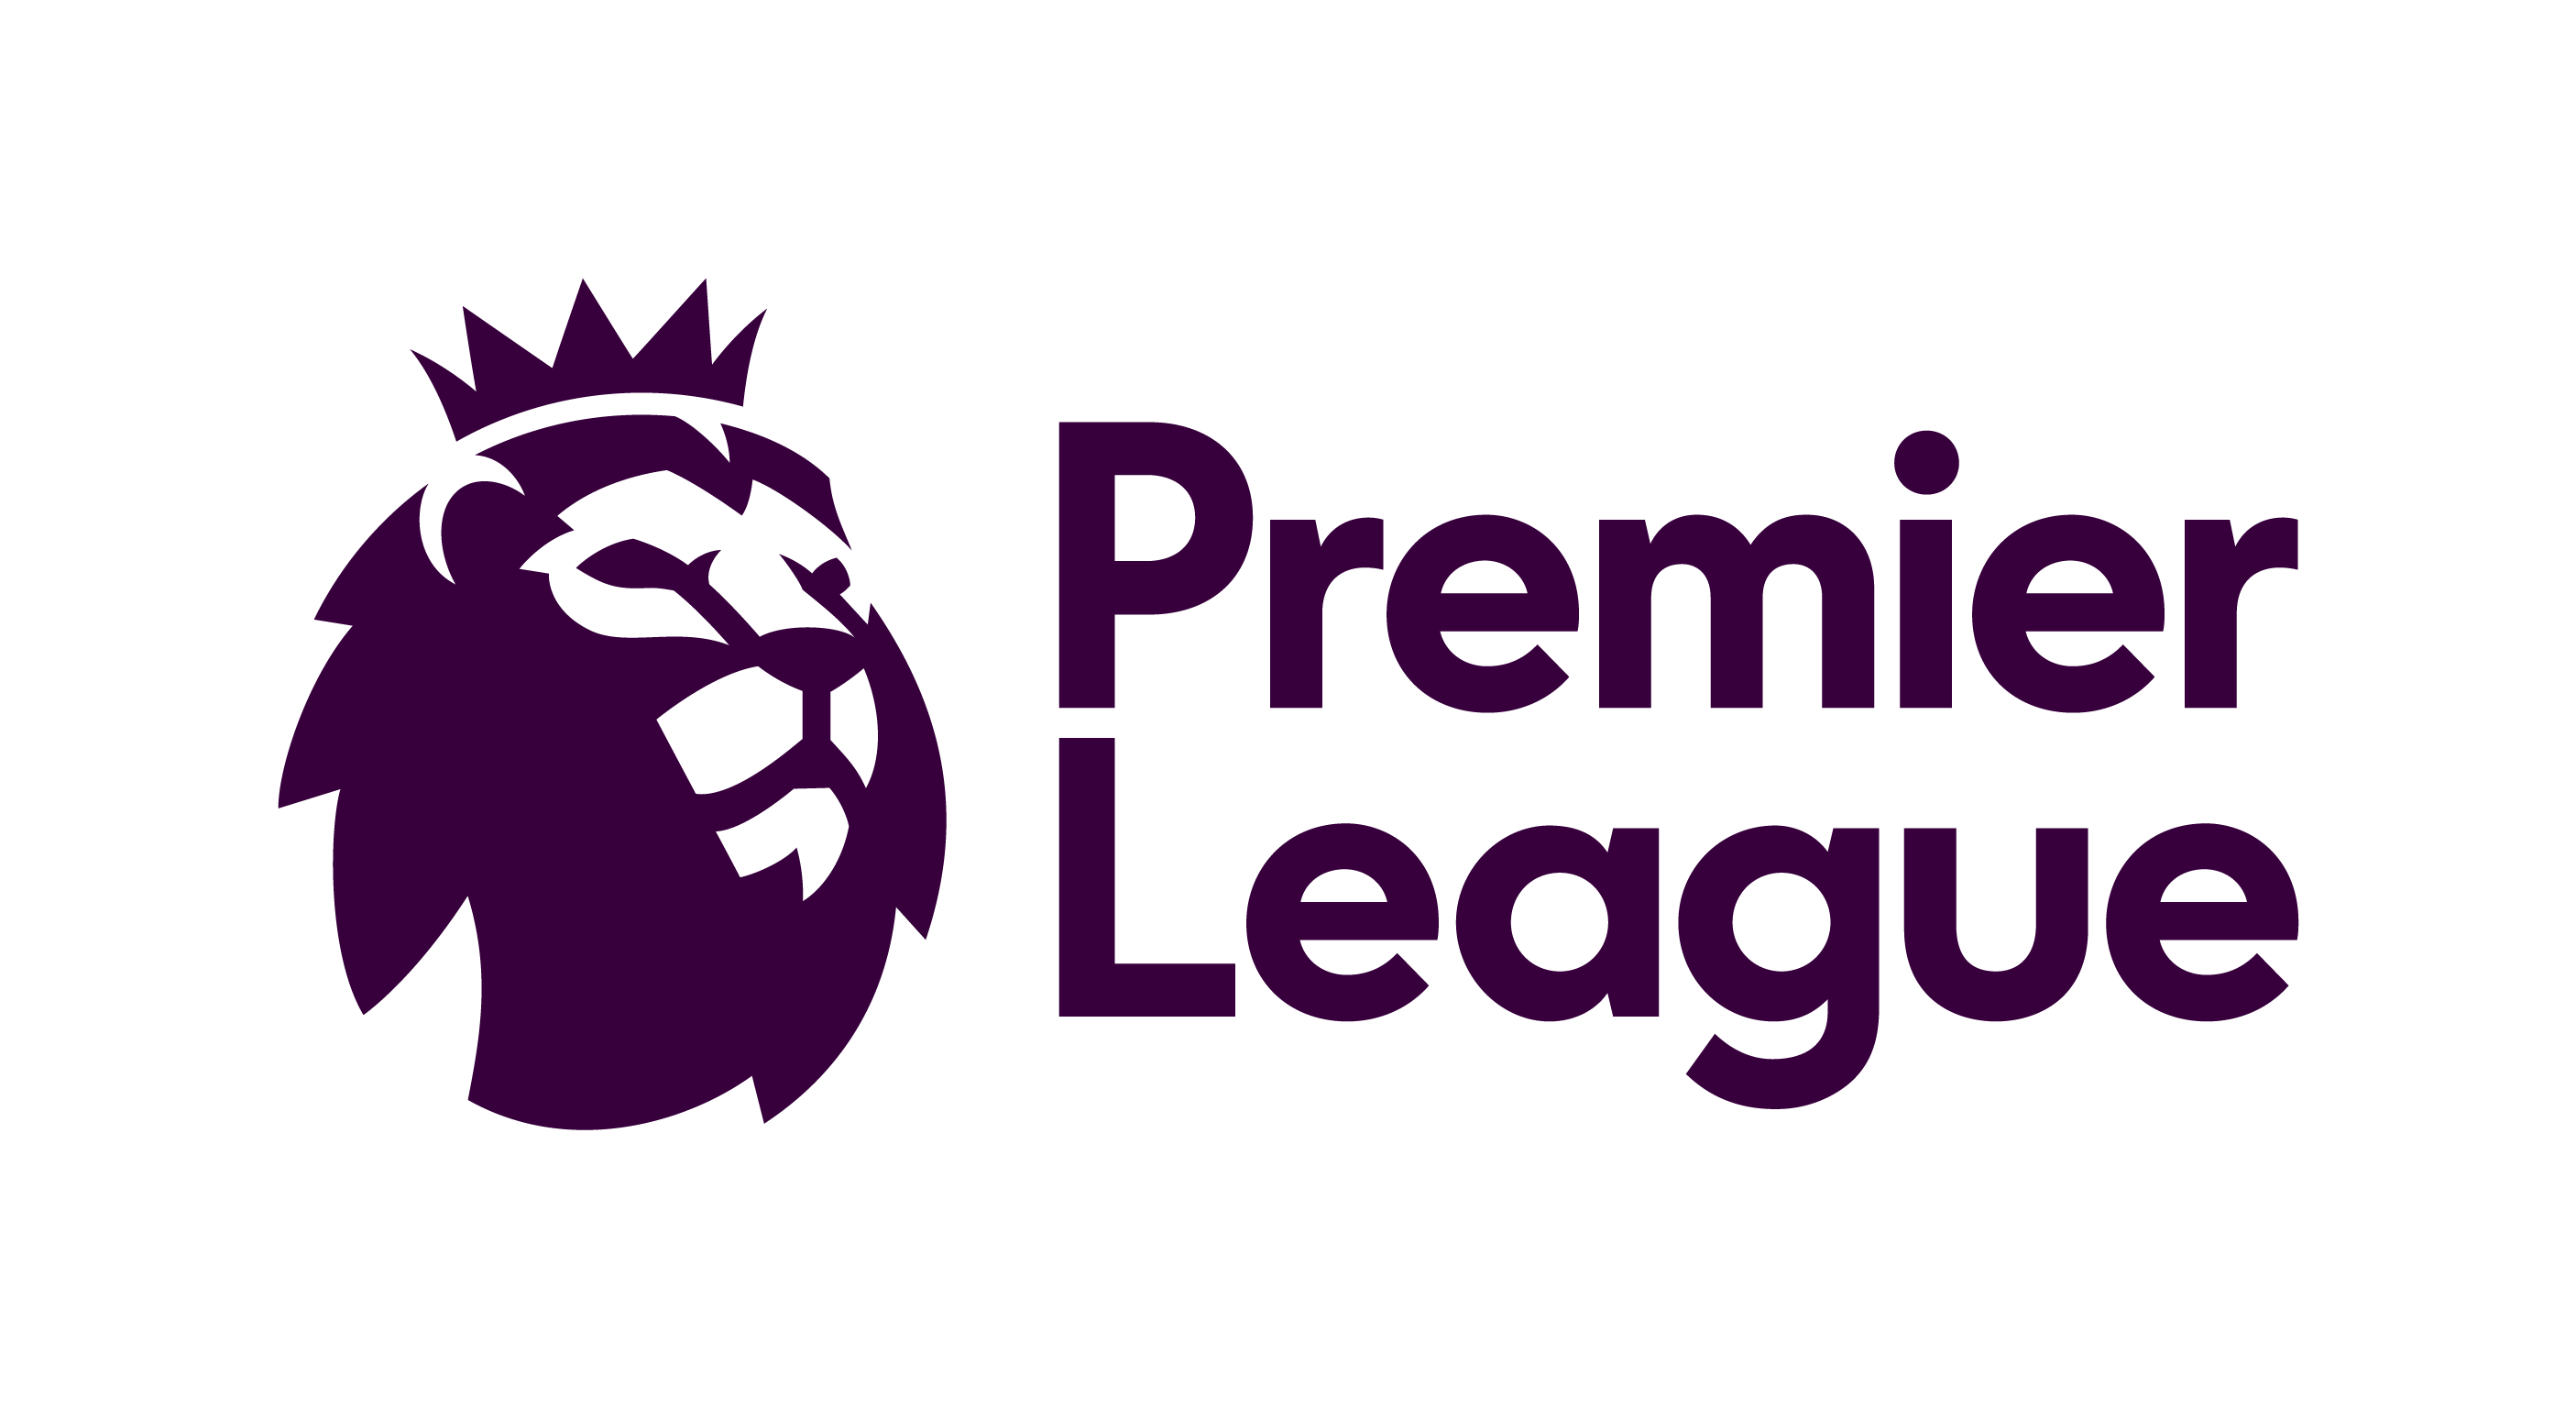 Link to https://www.premierleague.com/